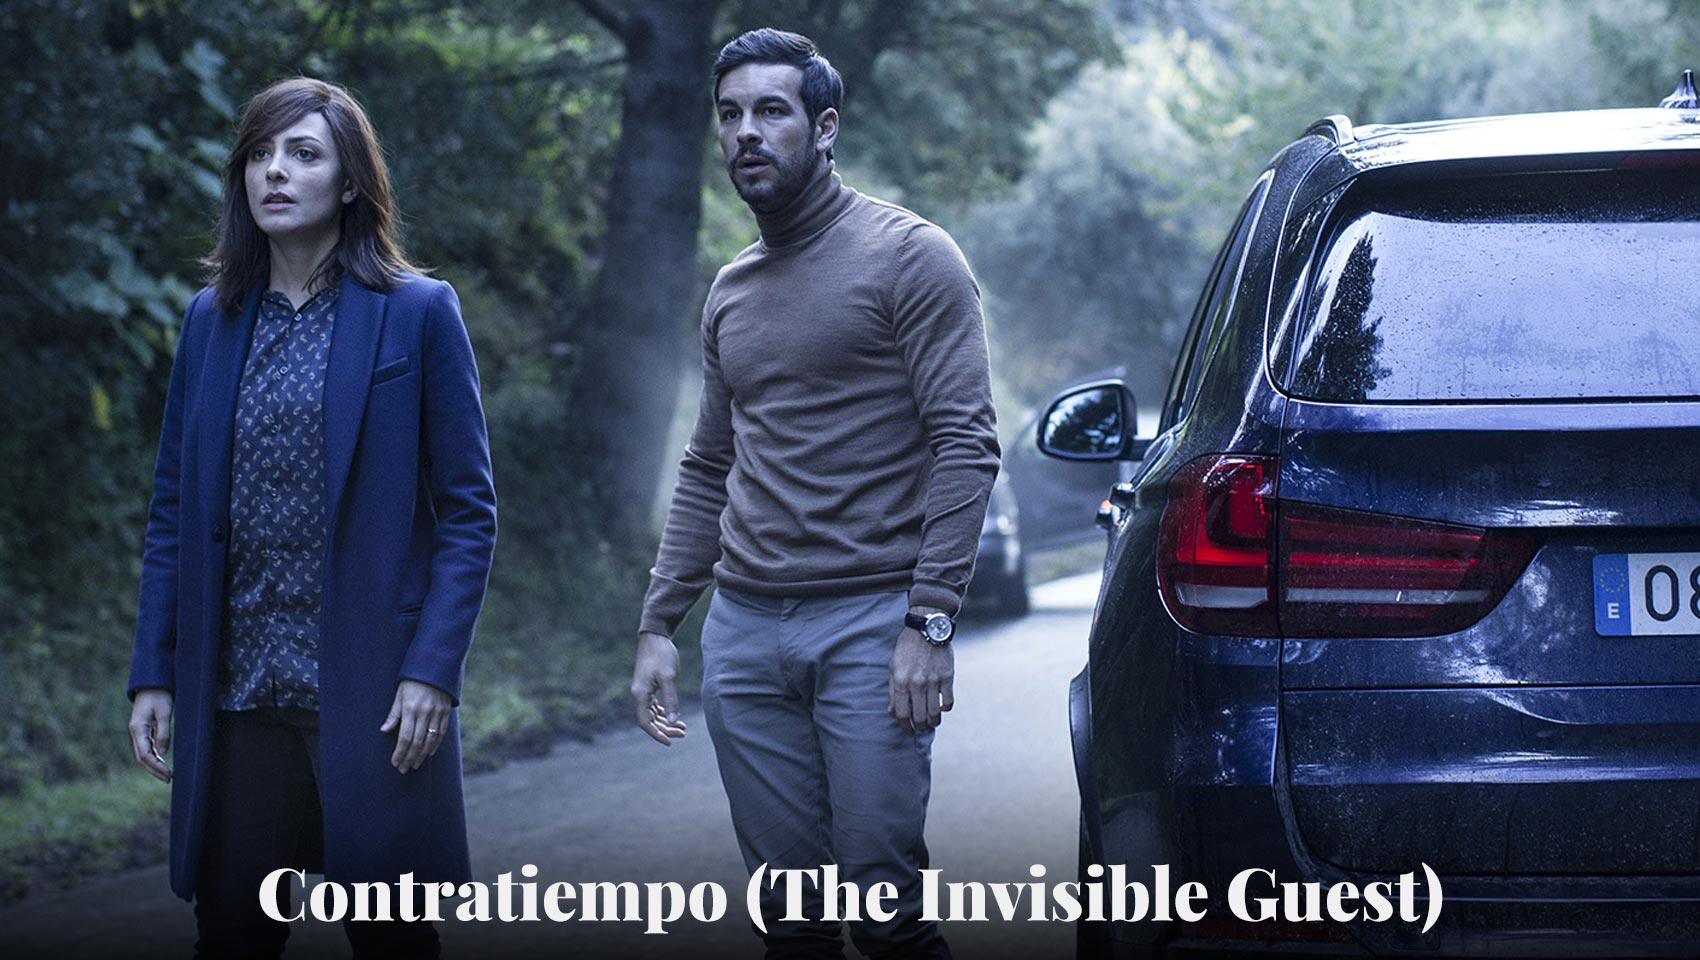 Contratiempo, The Invisible Guest Nostromo Pictures